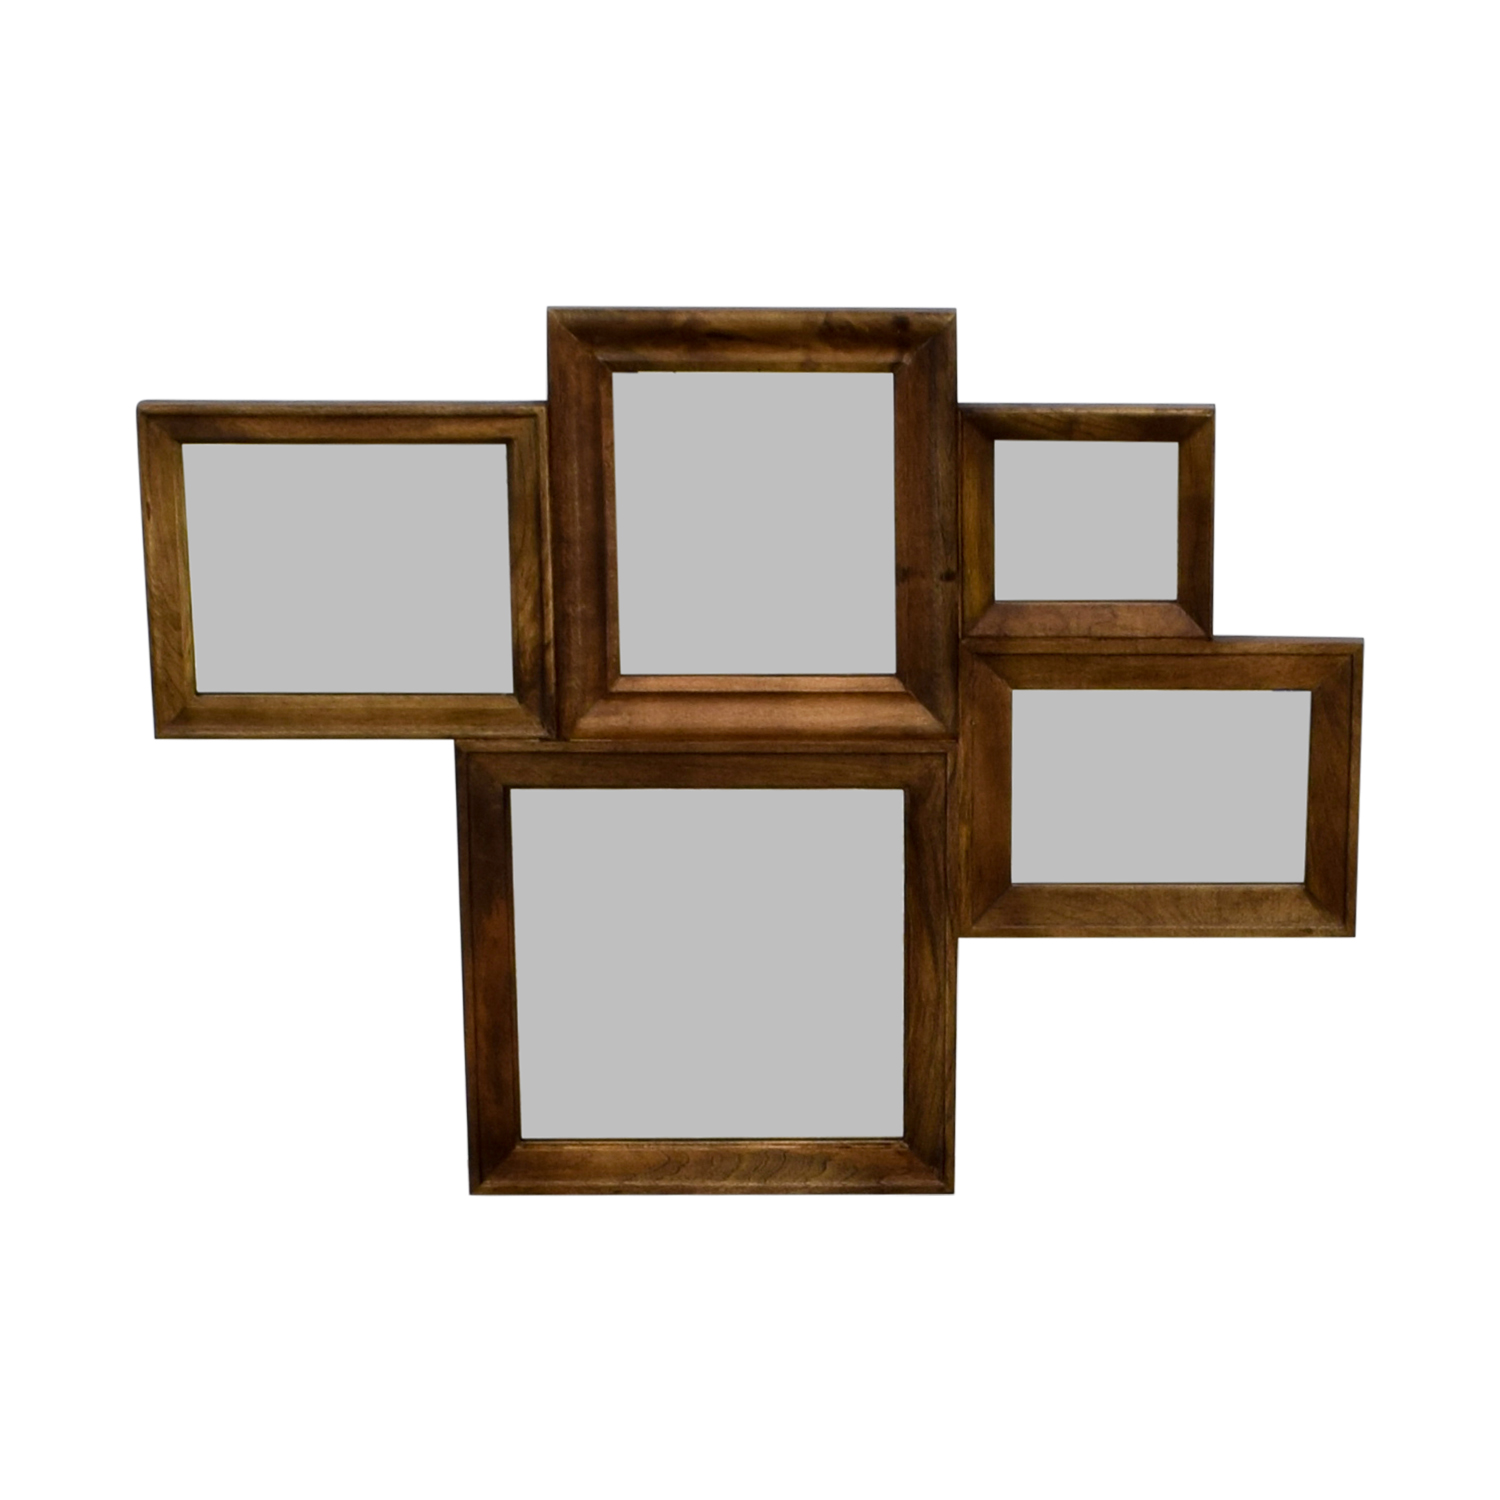 West Elm Jigsaw Mirror / Decor